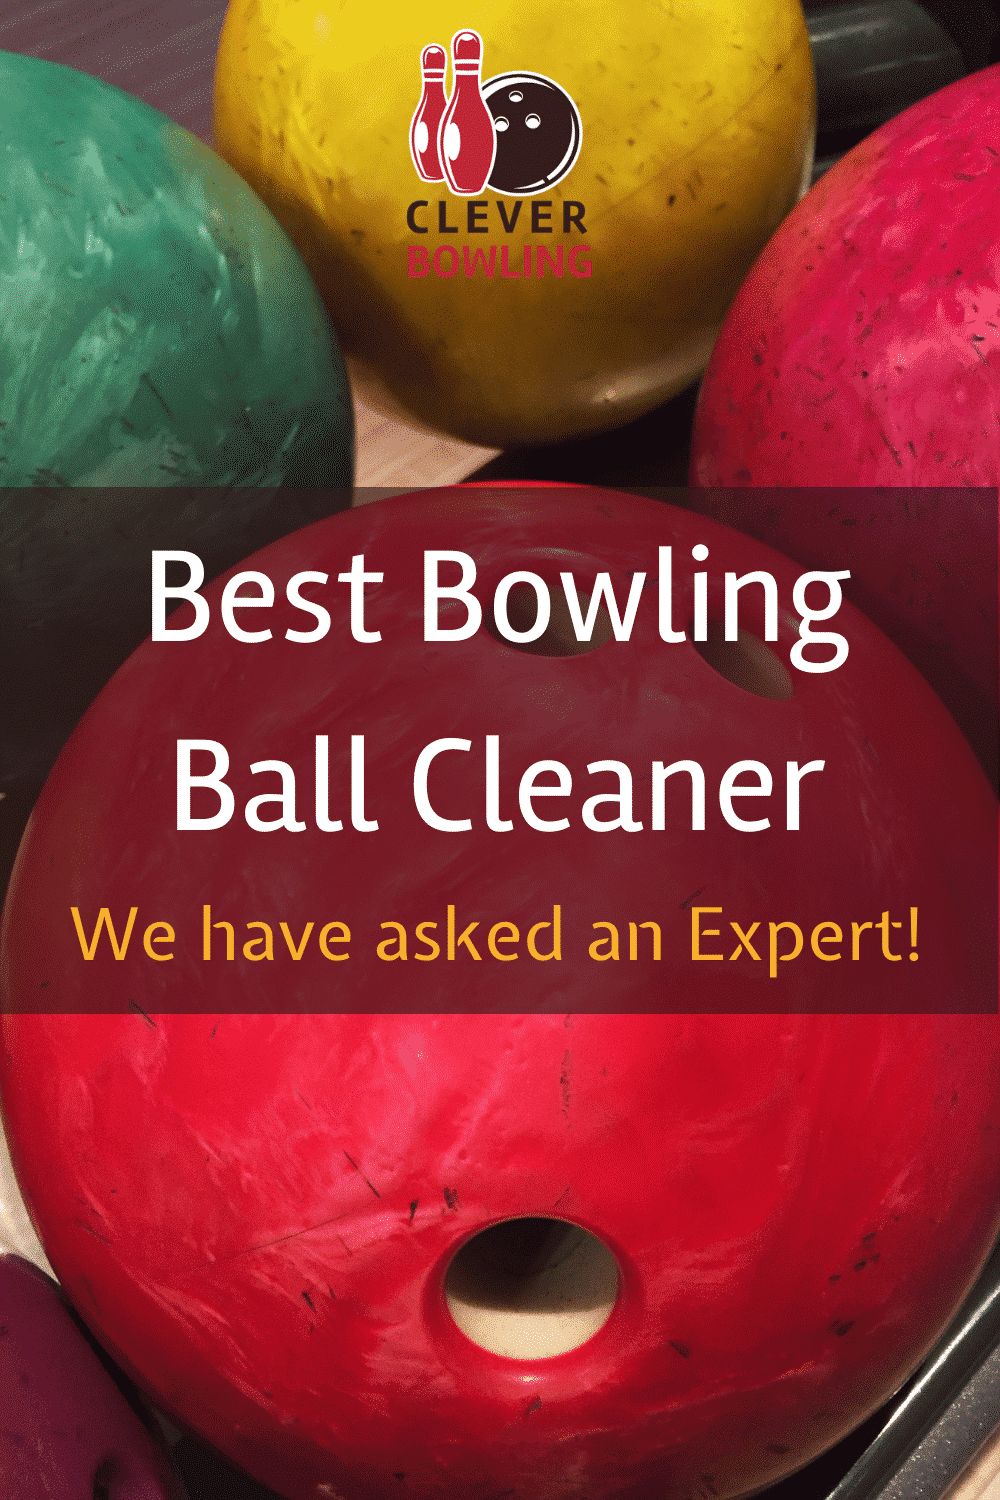 Best Bowling Ball Cleaner